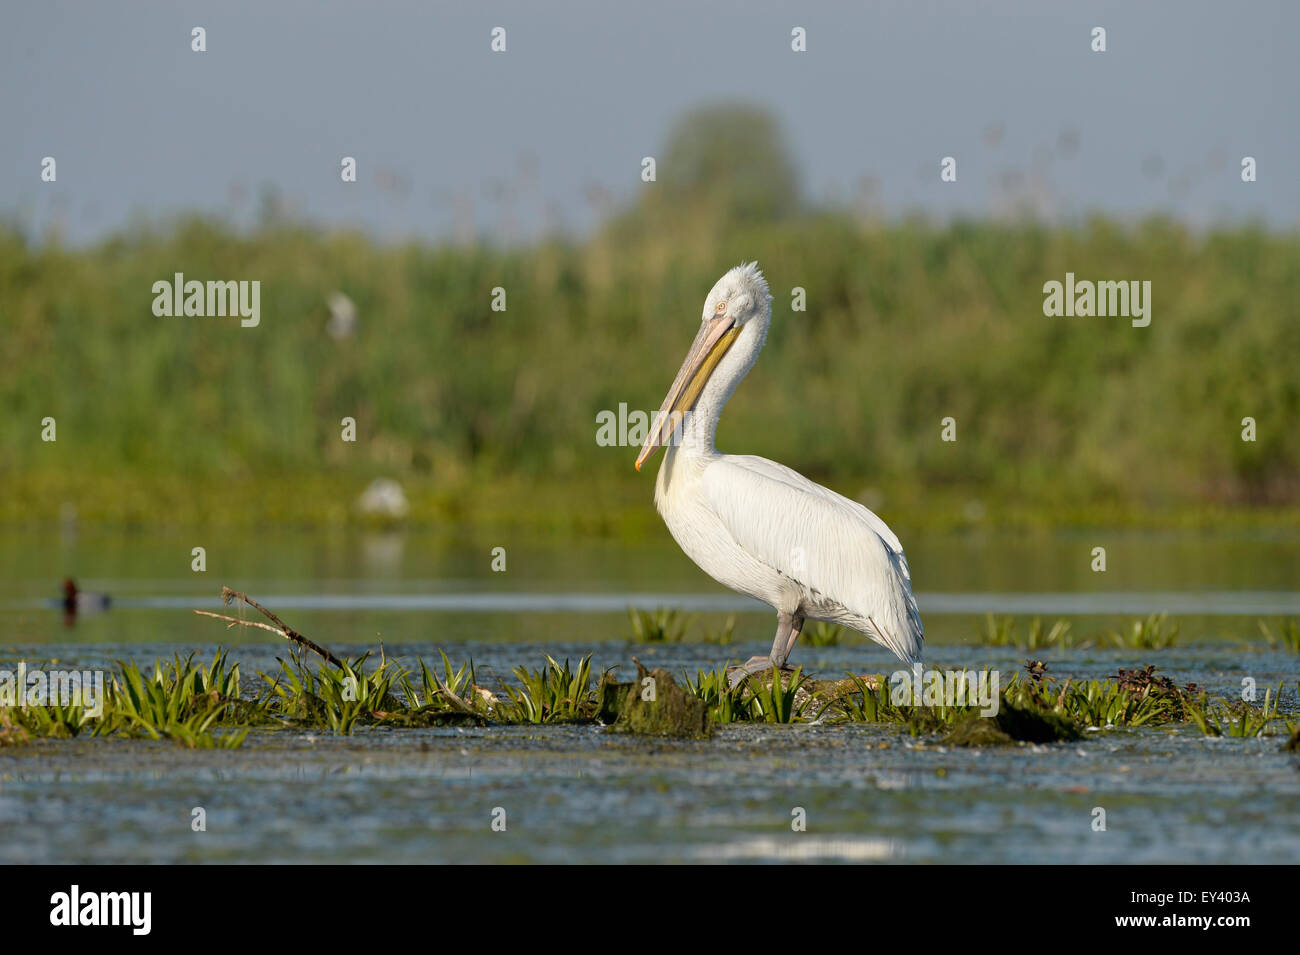 Dalmatian Pelican (Pelecanus crispus) standing in water on aquatic vegetation, Danube delta, Romania, May - Stock Image